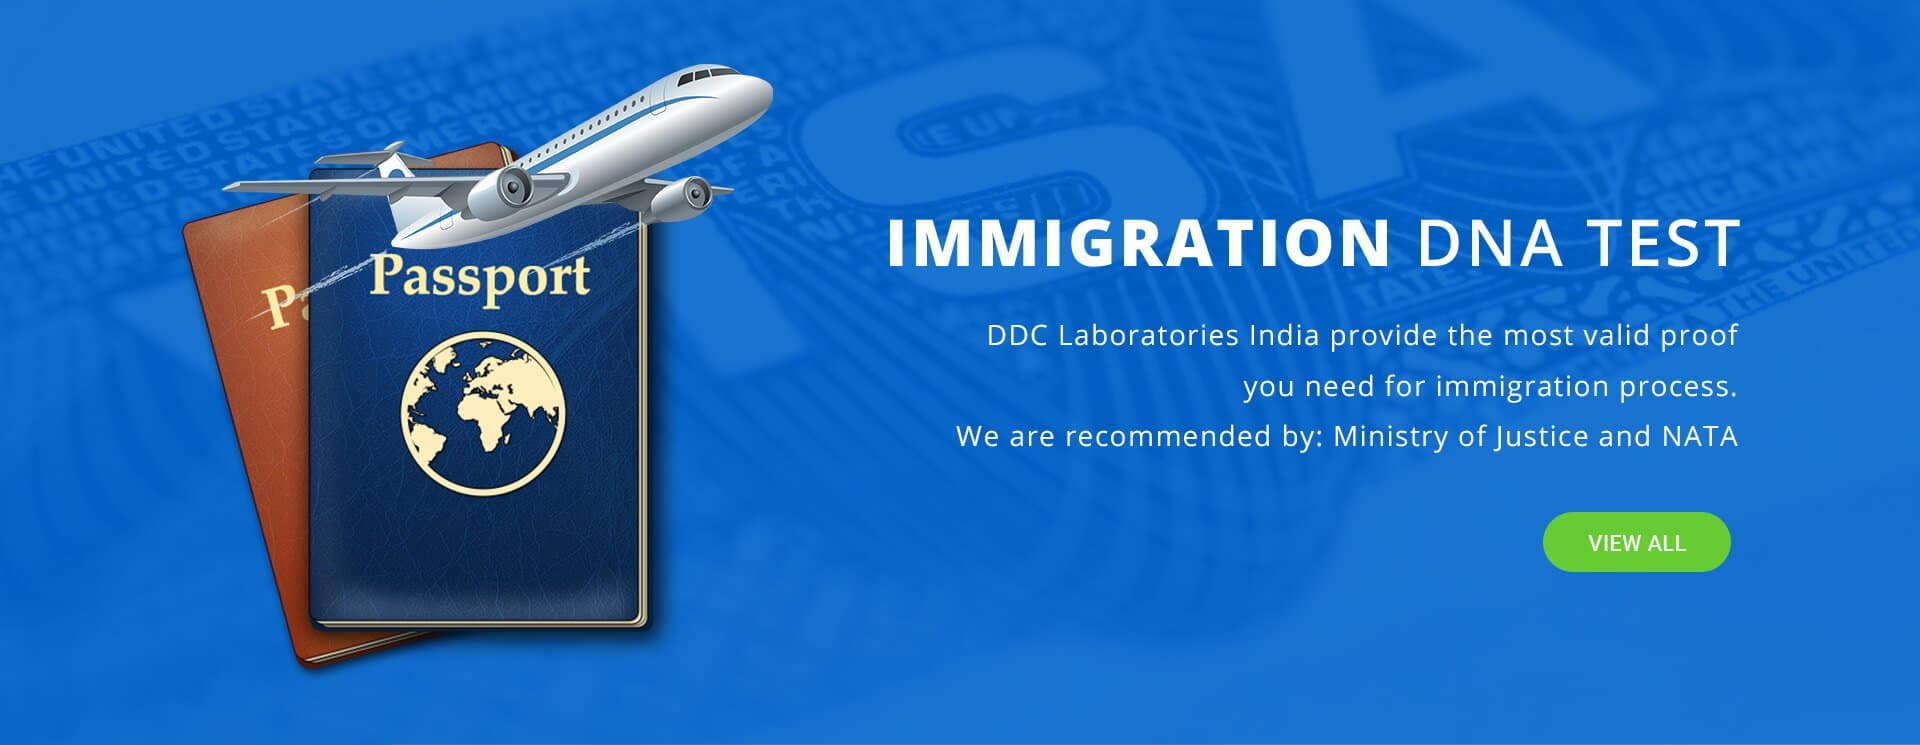 Immigration DNA Tests in India for VISA Approval - DDC Laboratories